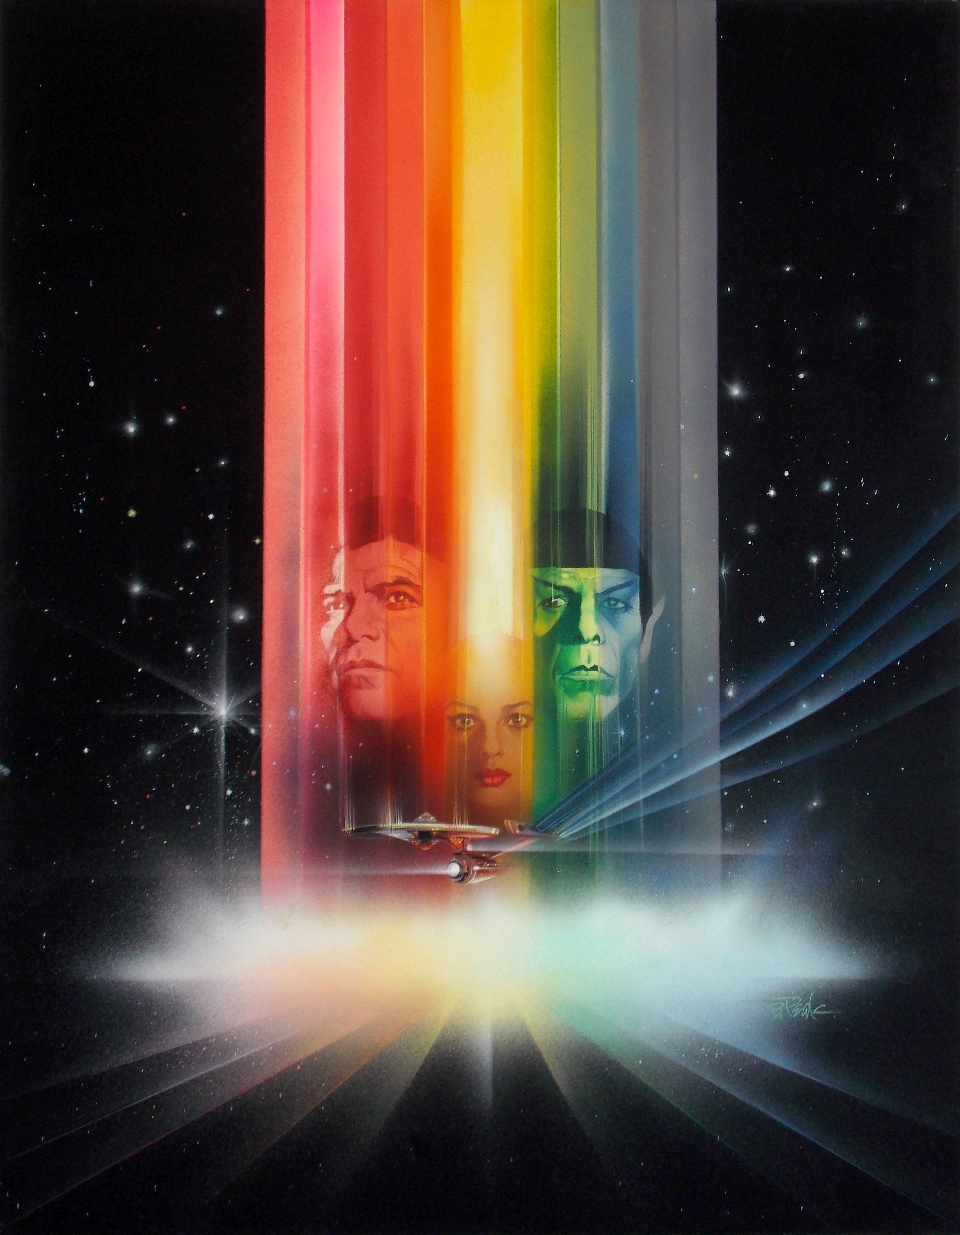 Poster design article - Star Trek The Motion Picture Poster Design 1